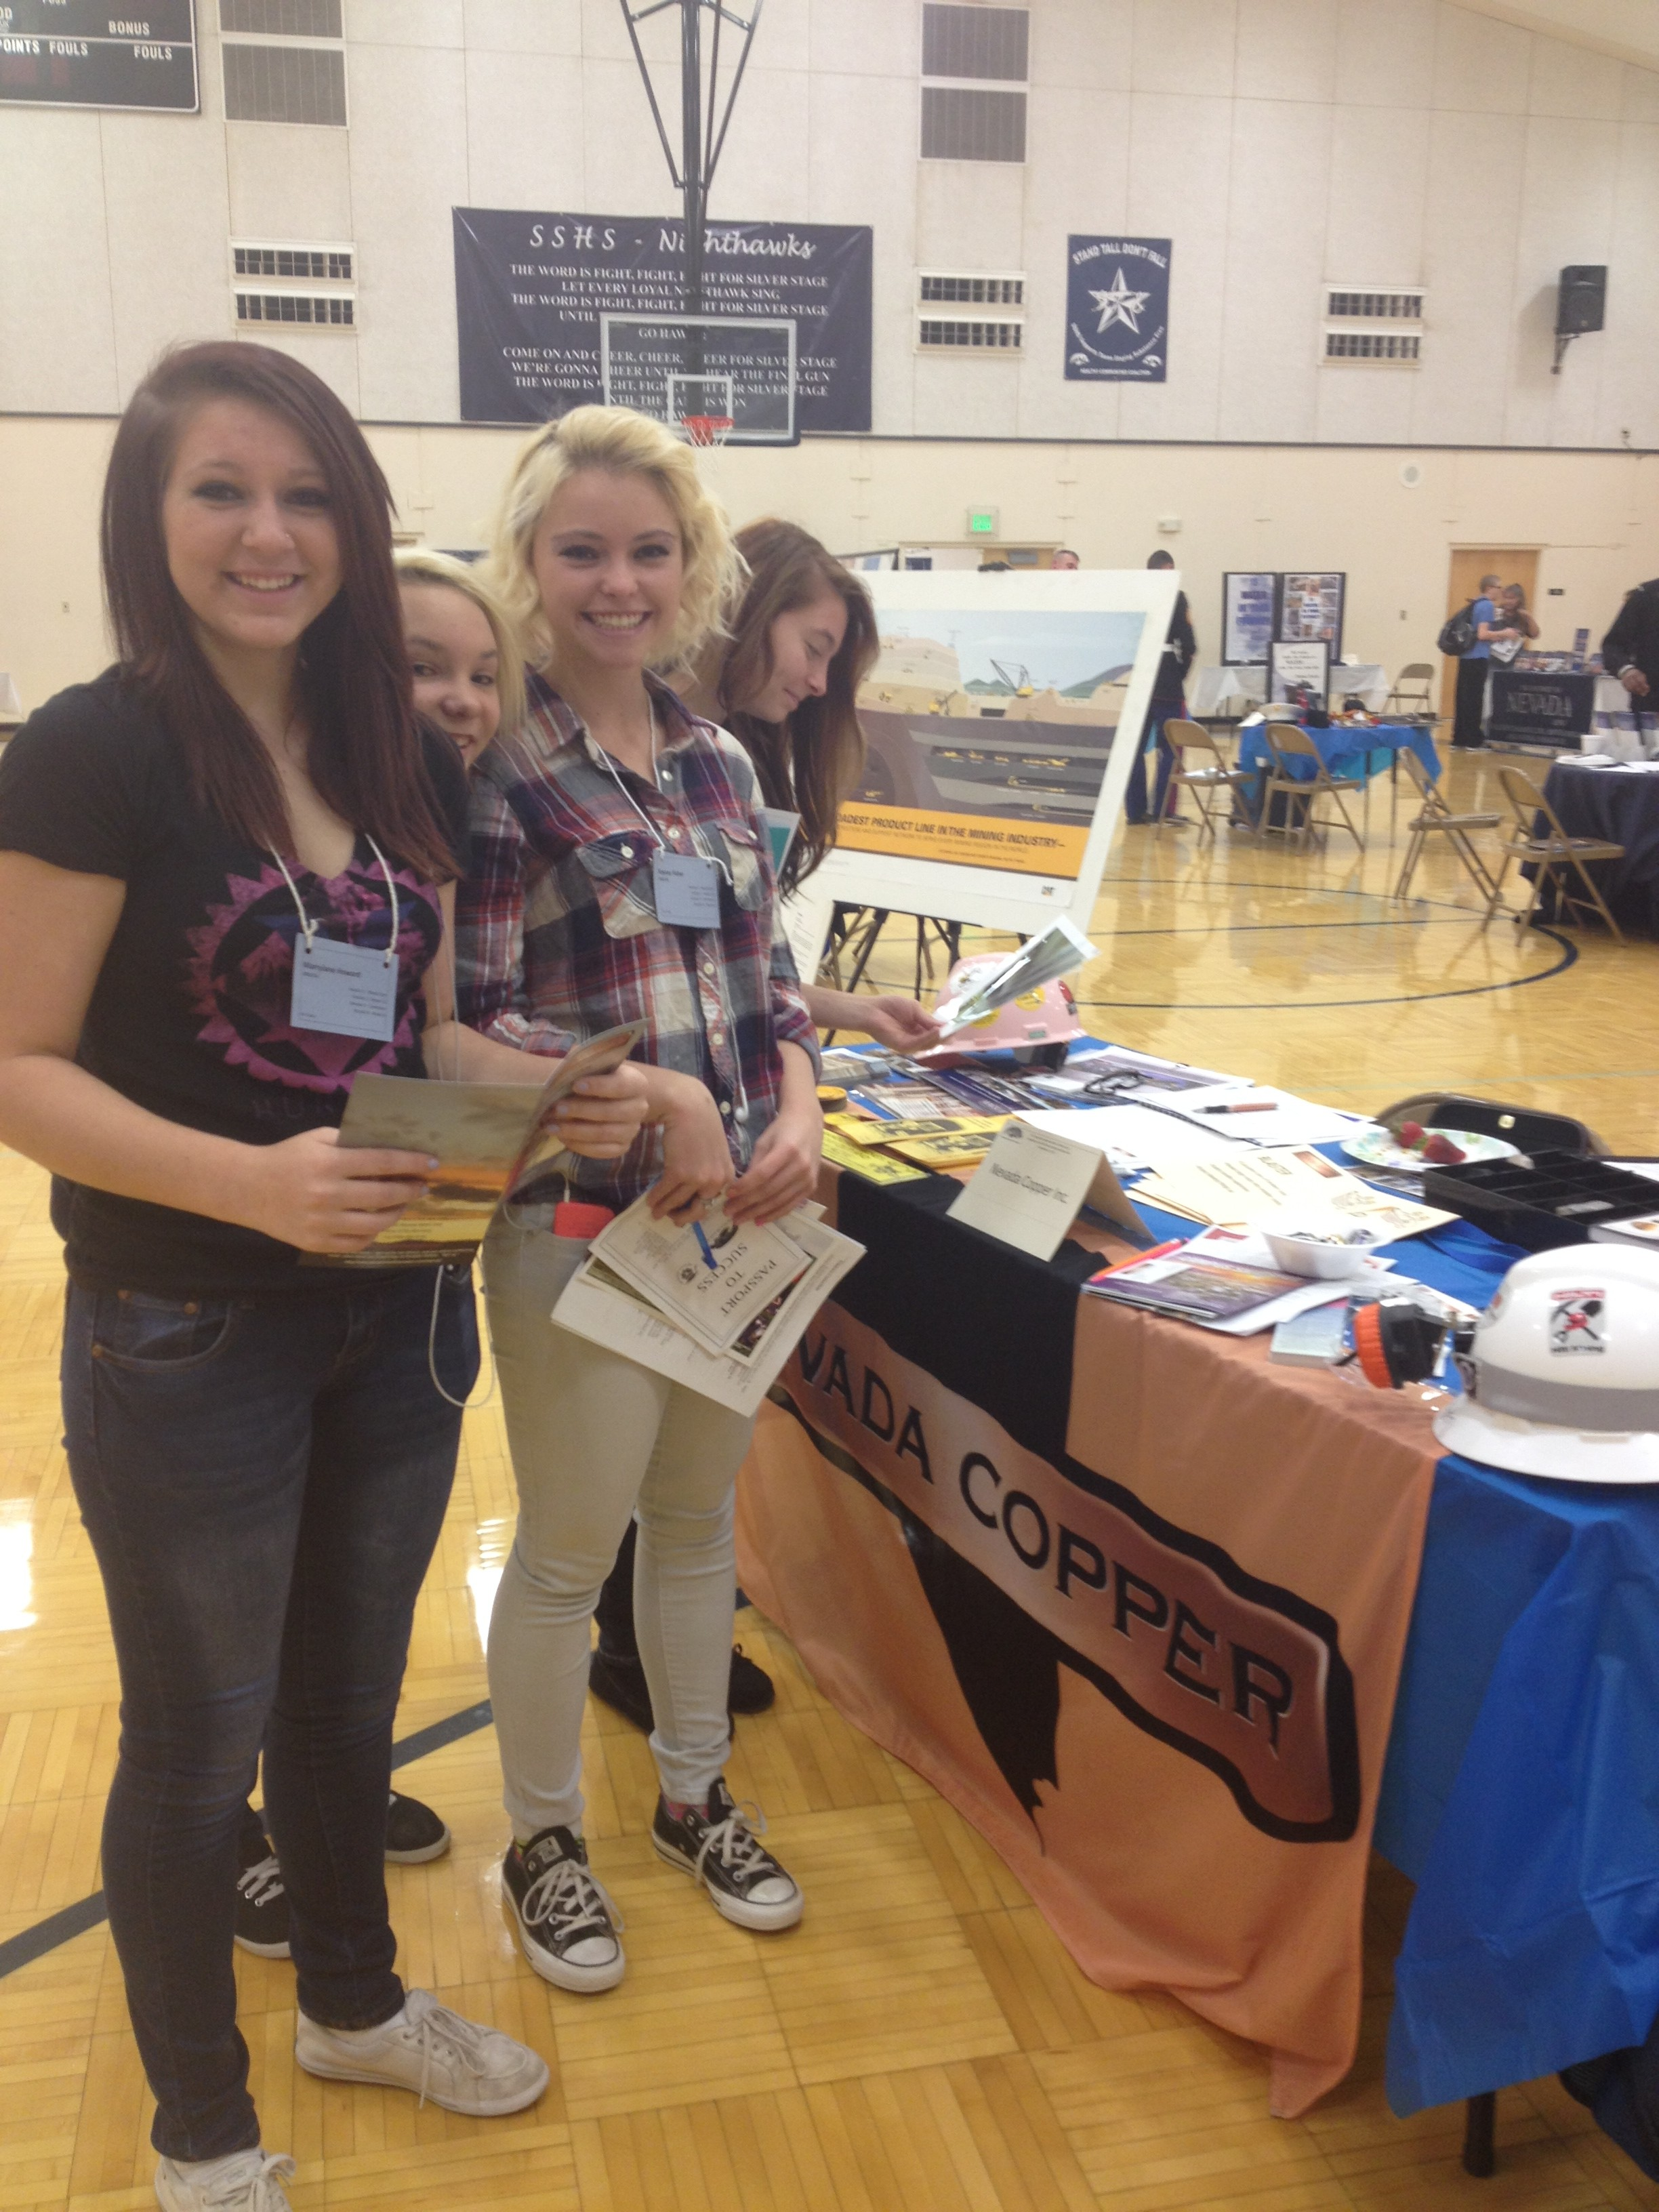 mackay school of mines nevada copper pumpkin hollow project silver stage high school students the nevada copper pumpkin hollow mine project s booth on